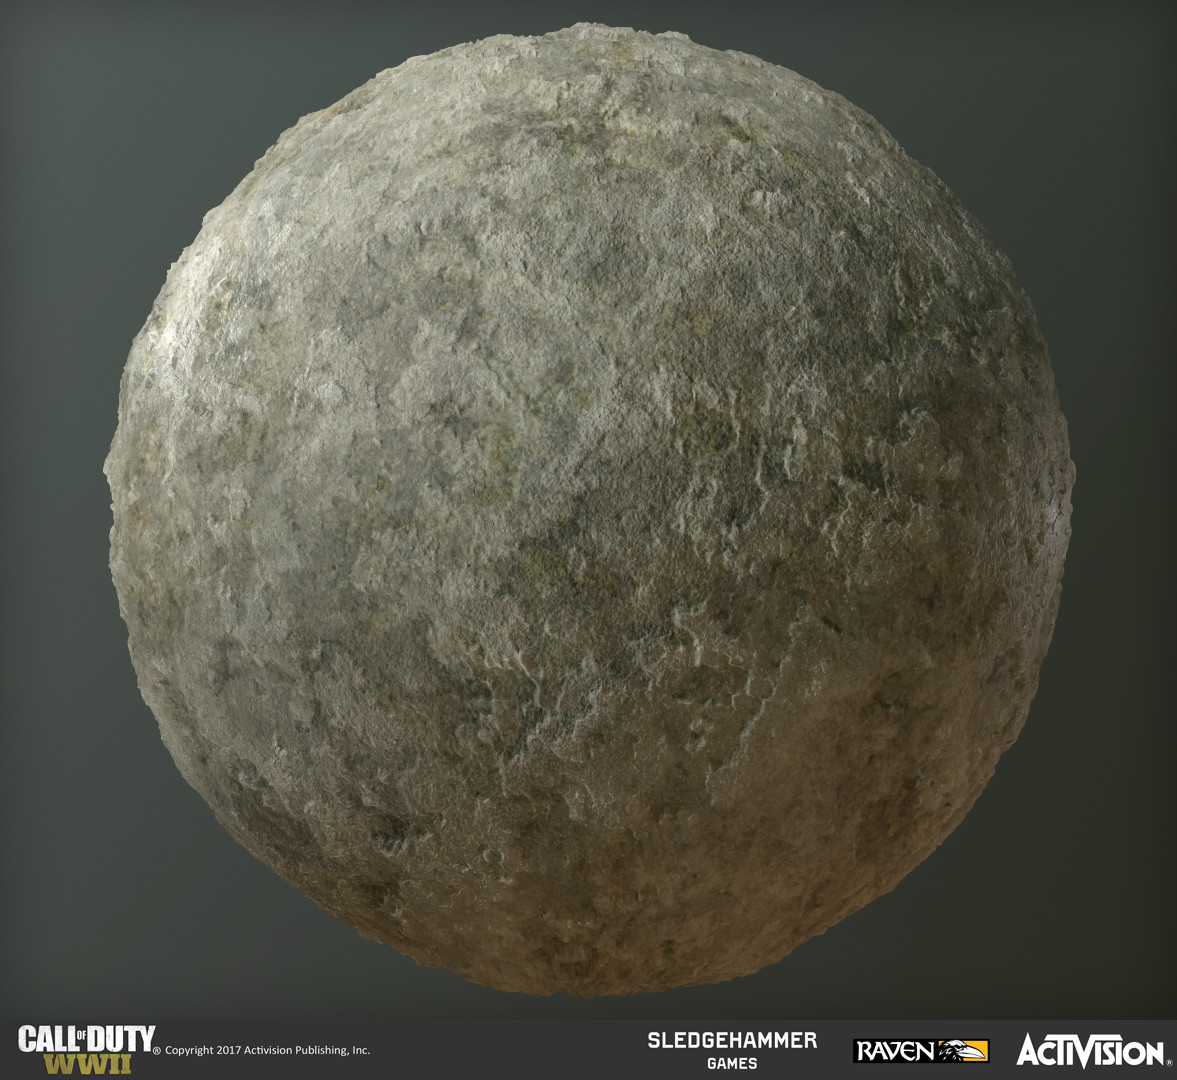 Plaster base material created procedurally in Substance Designer. I was able to create a suite of tools for large cracks and damage quickly utilizing designer to quickly dress the walls of the communication building.